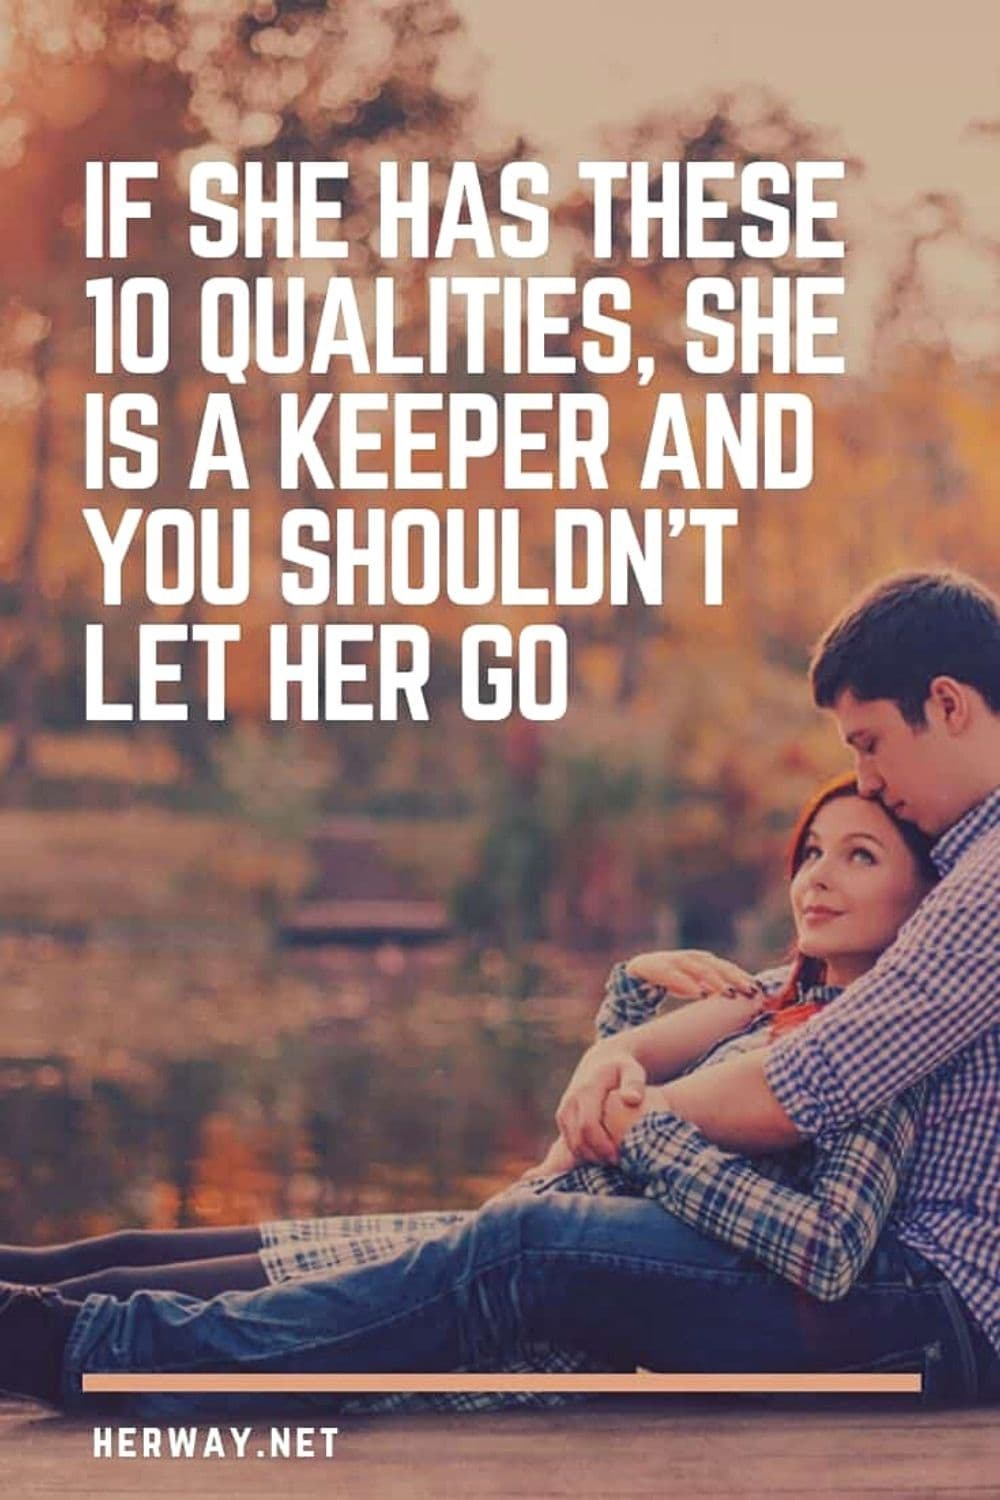 If She Has These 10 Qualities, She Is A Keeper And You Shouldn't Let Her Go